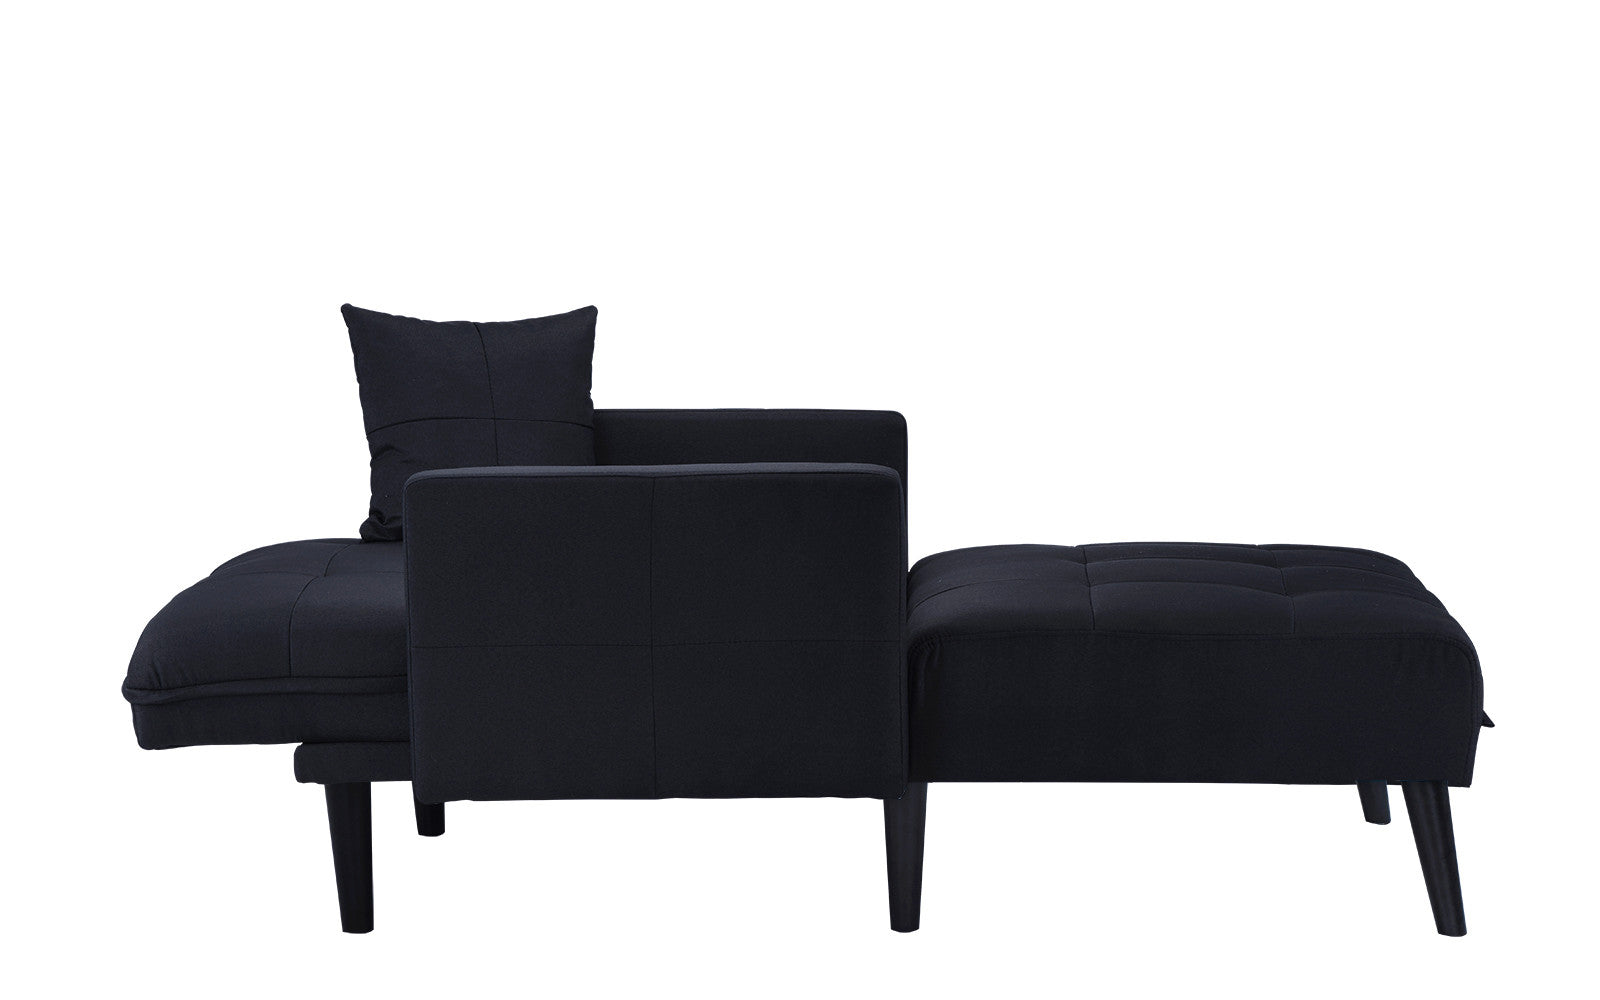 b0ea3eabe39 ... Madrid Linen Sleeper Chaise Lounge In Black Side Shot Flat ...